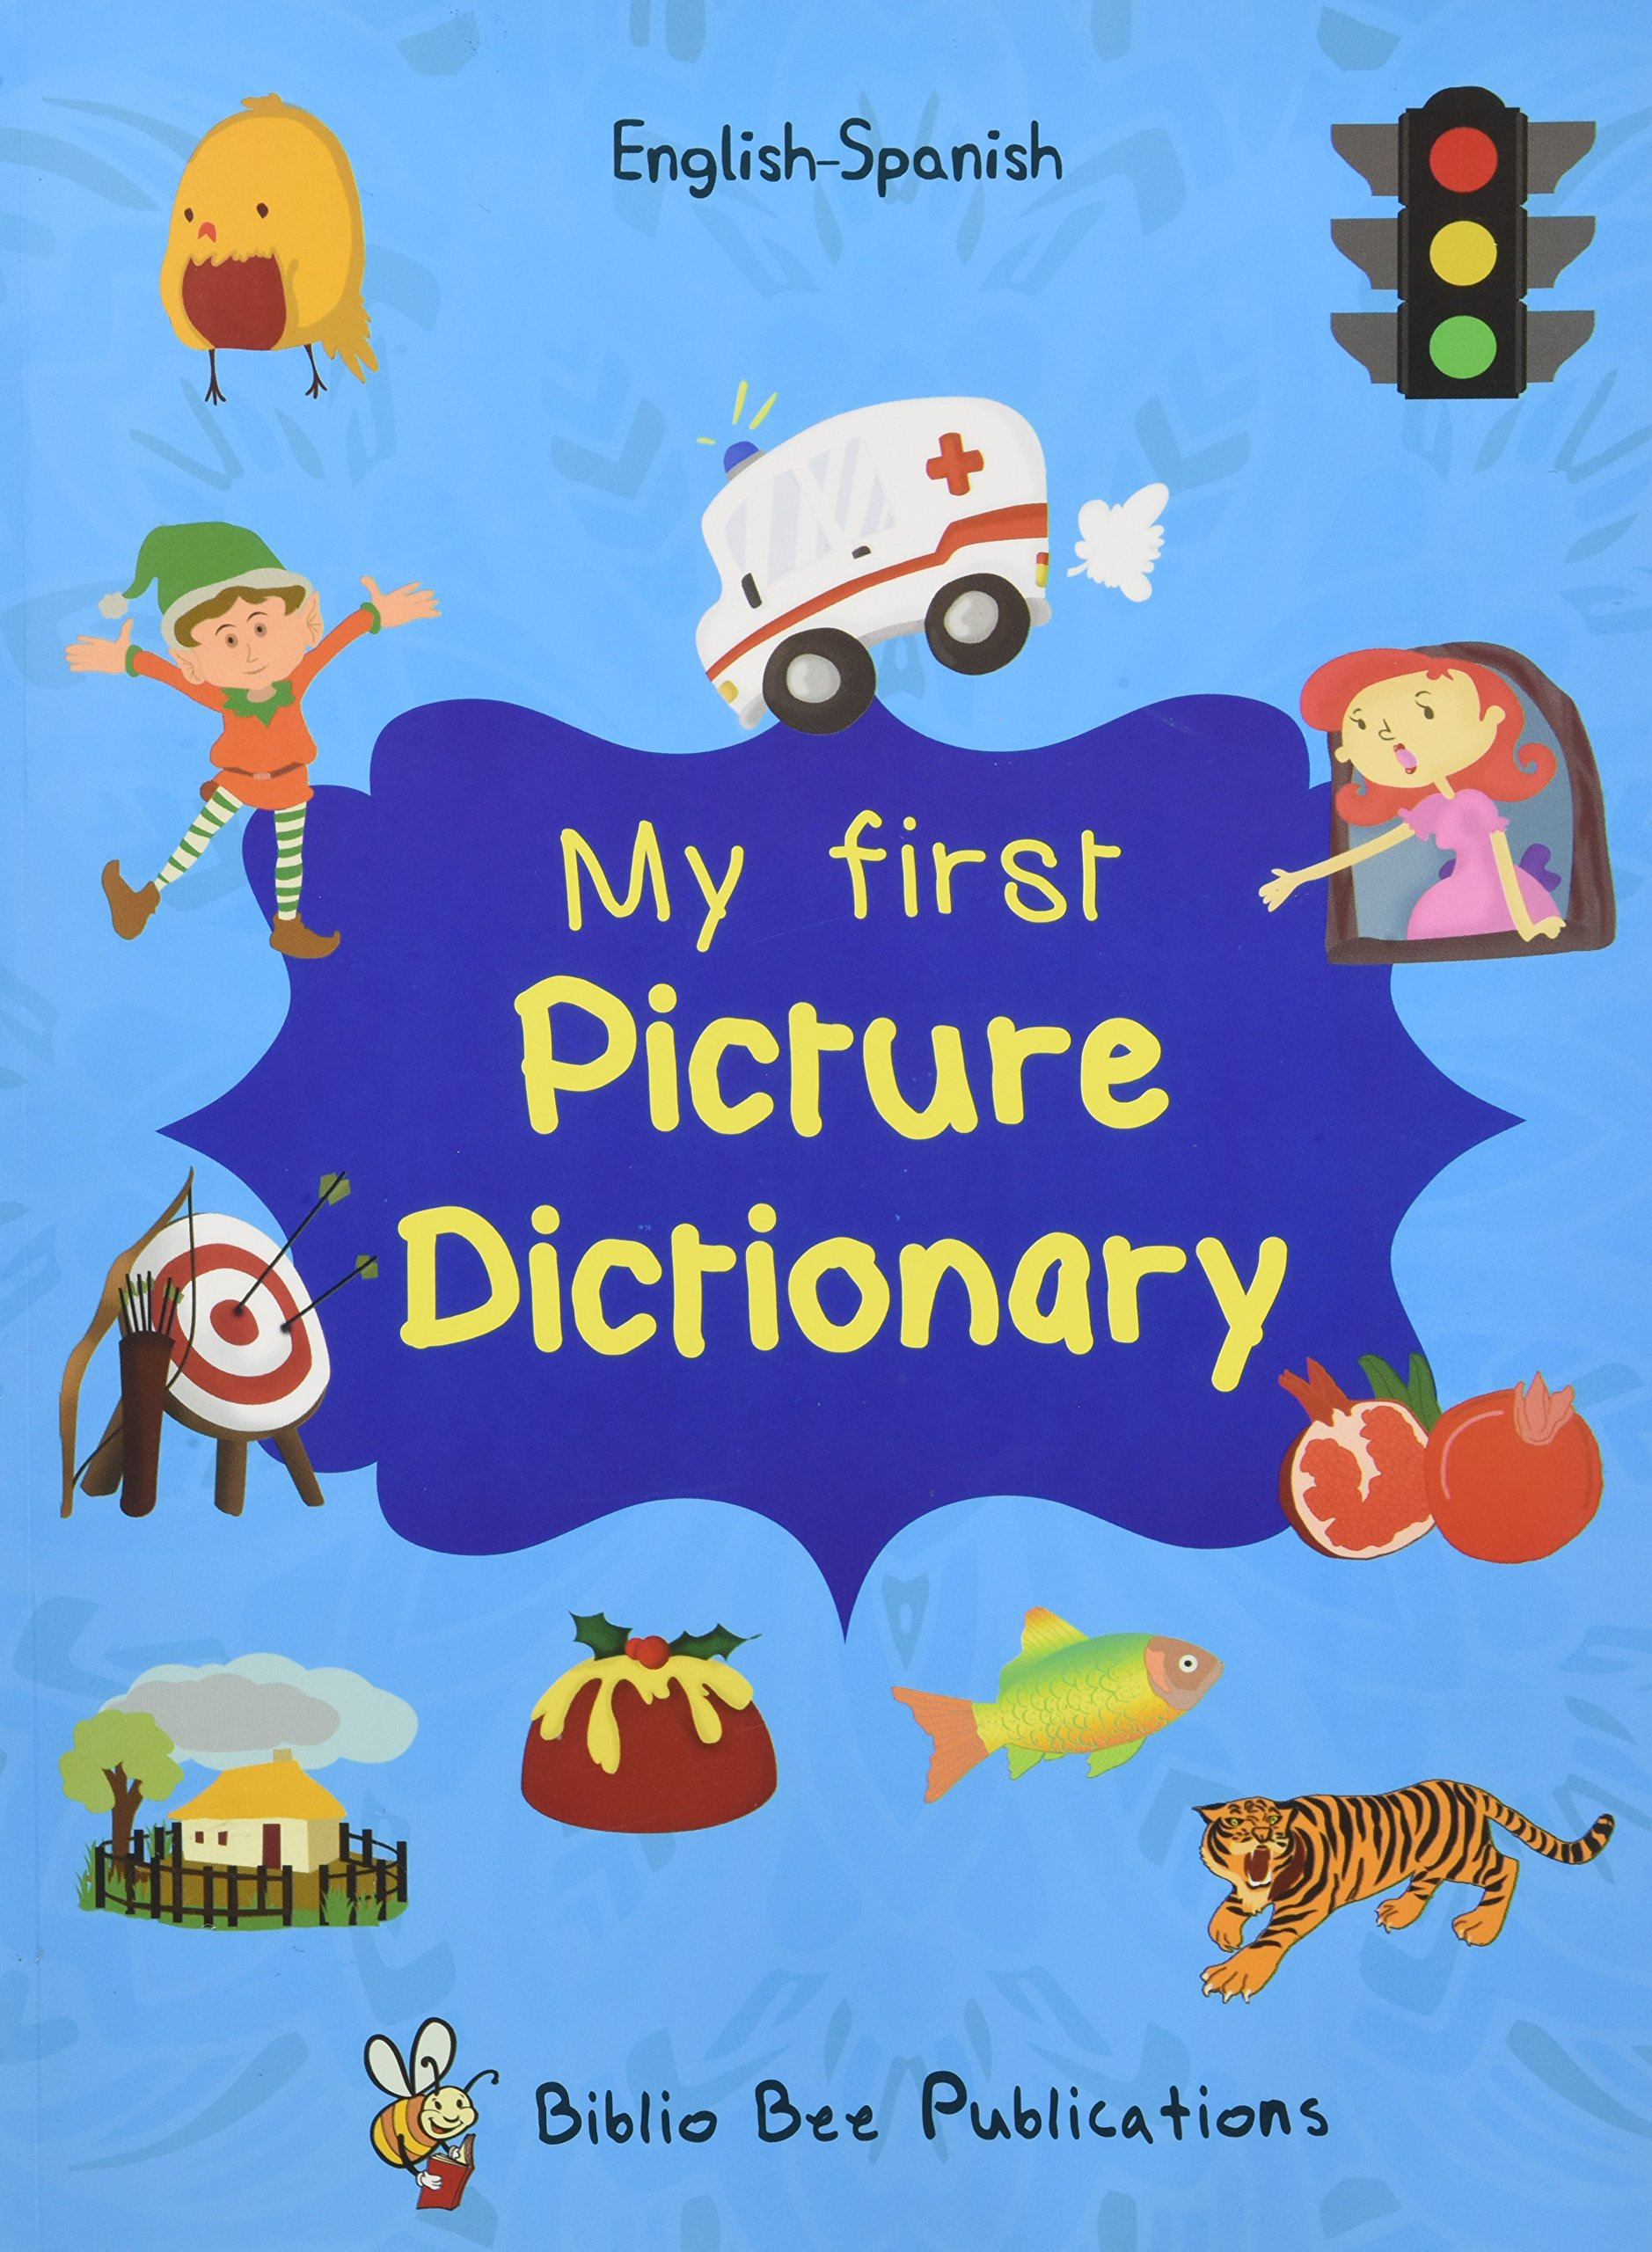 My First Picture Dictionary: English-Spanish with Over 1000 Words 2016 (Spanish Edition) pdf